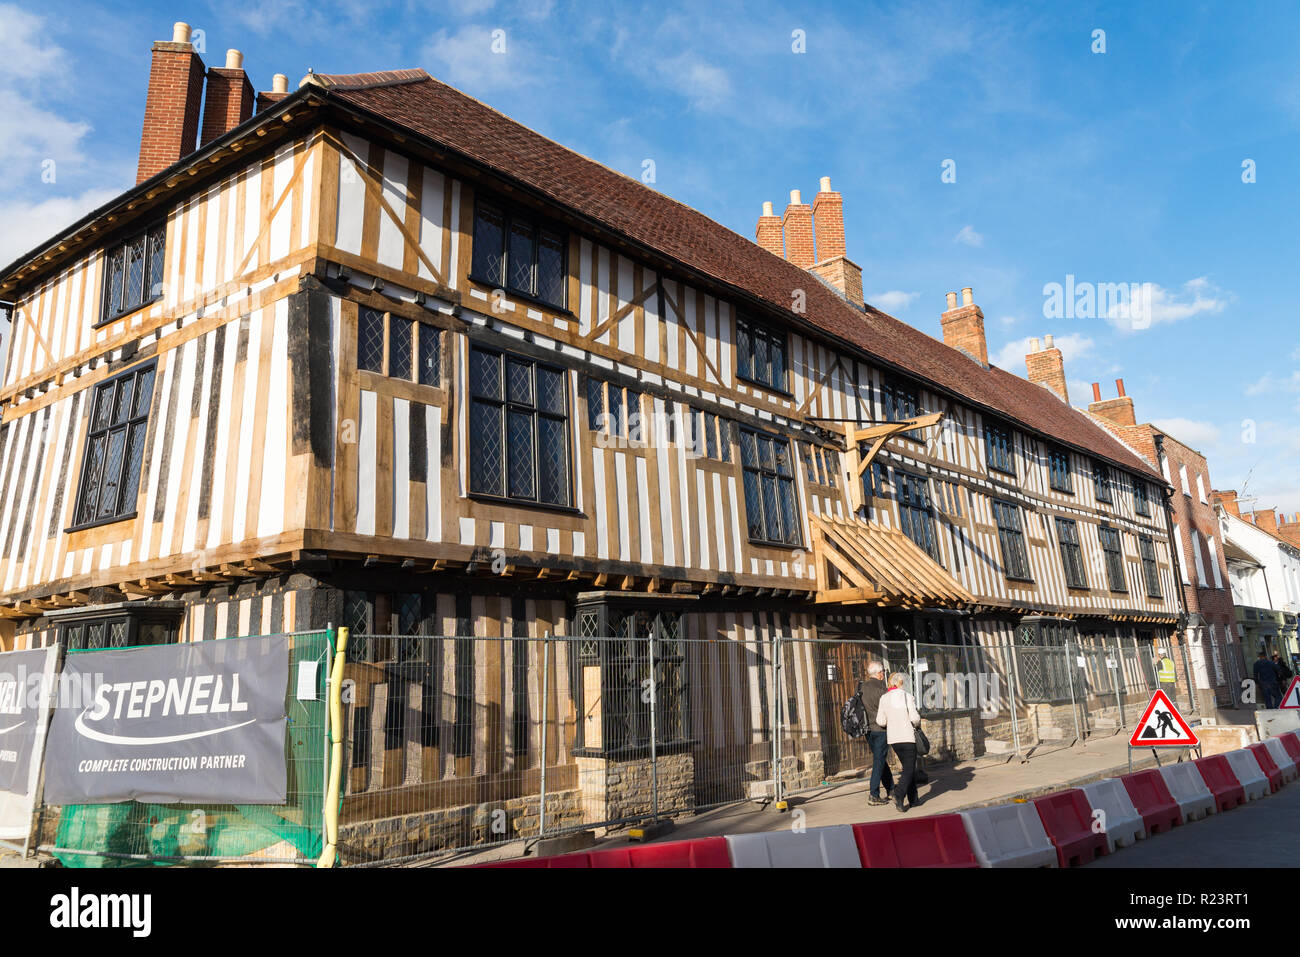 Hotal Indigo historic timber-framed building which is undergoing full external restoration in Stratford-upon-Avon, Warwickshire - Stock Image